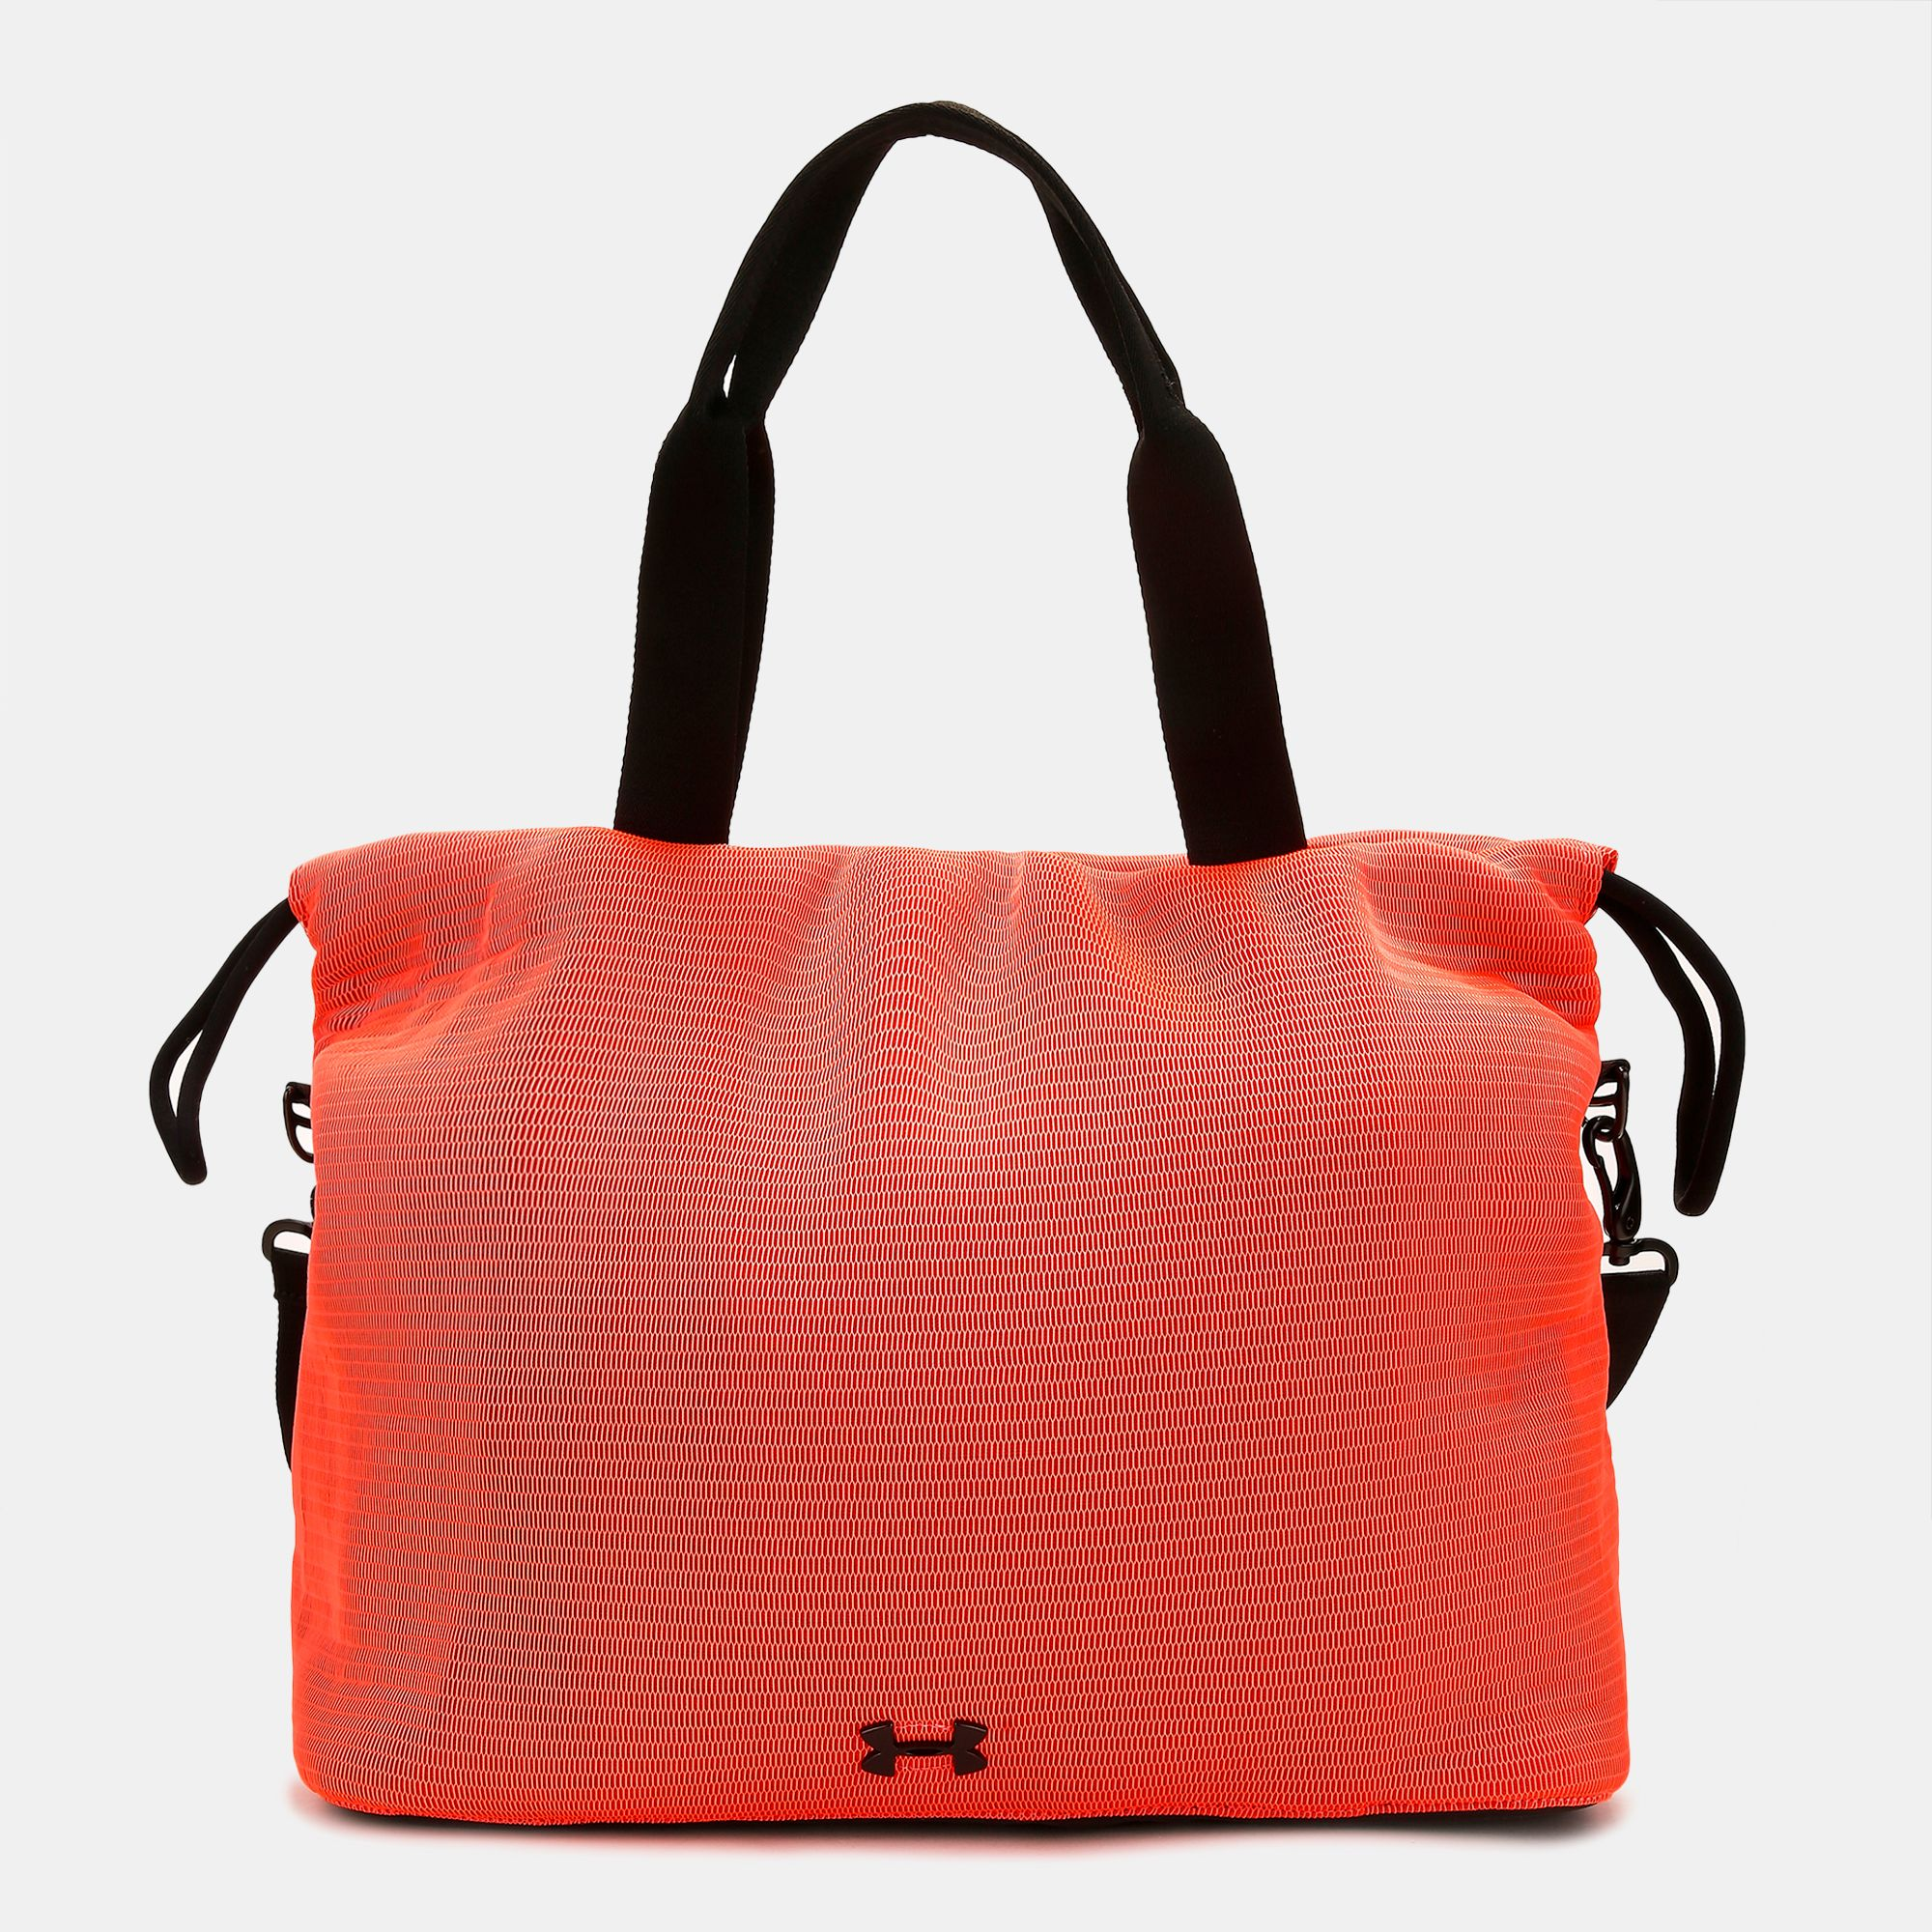 3c6805e53a12 Shop Pink Under Armour Cinch Mesh Tote Bag for Womens by Under ...